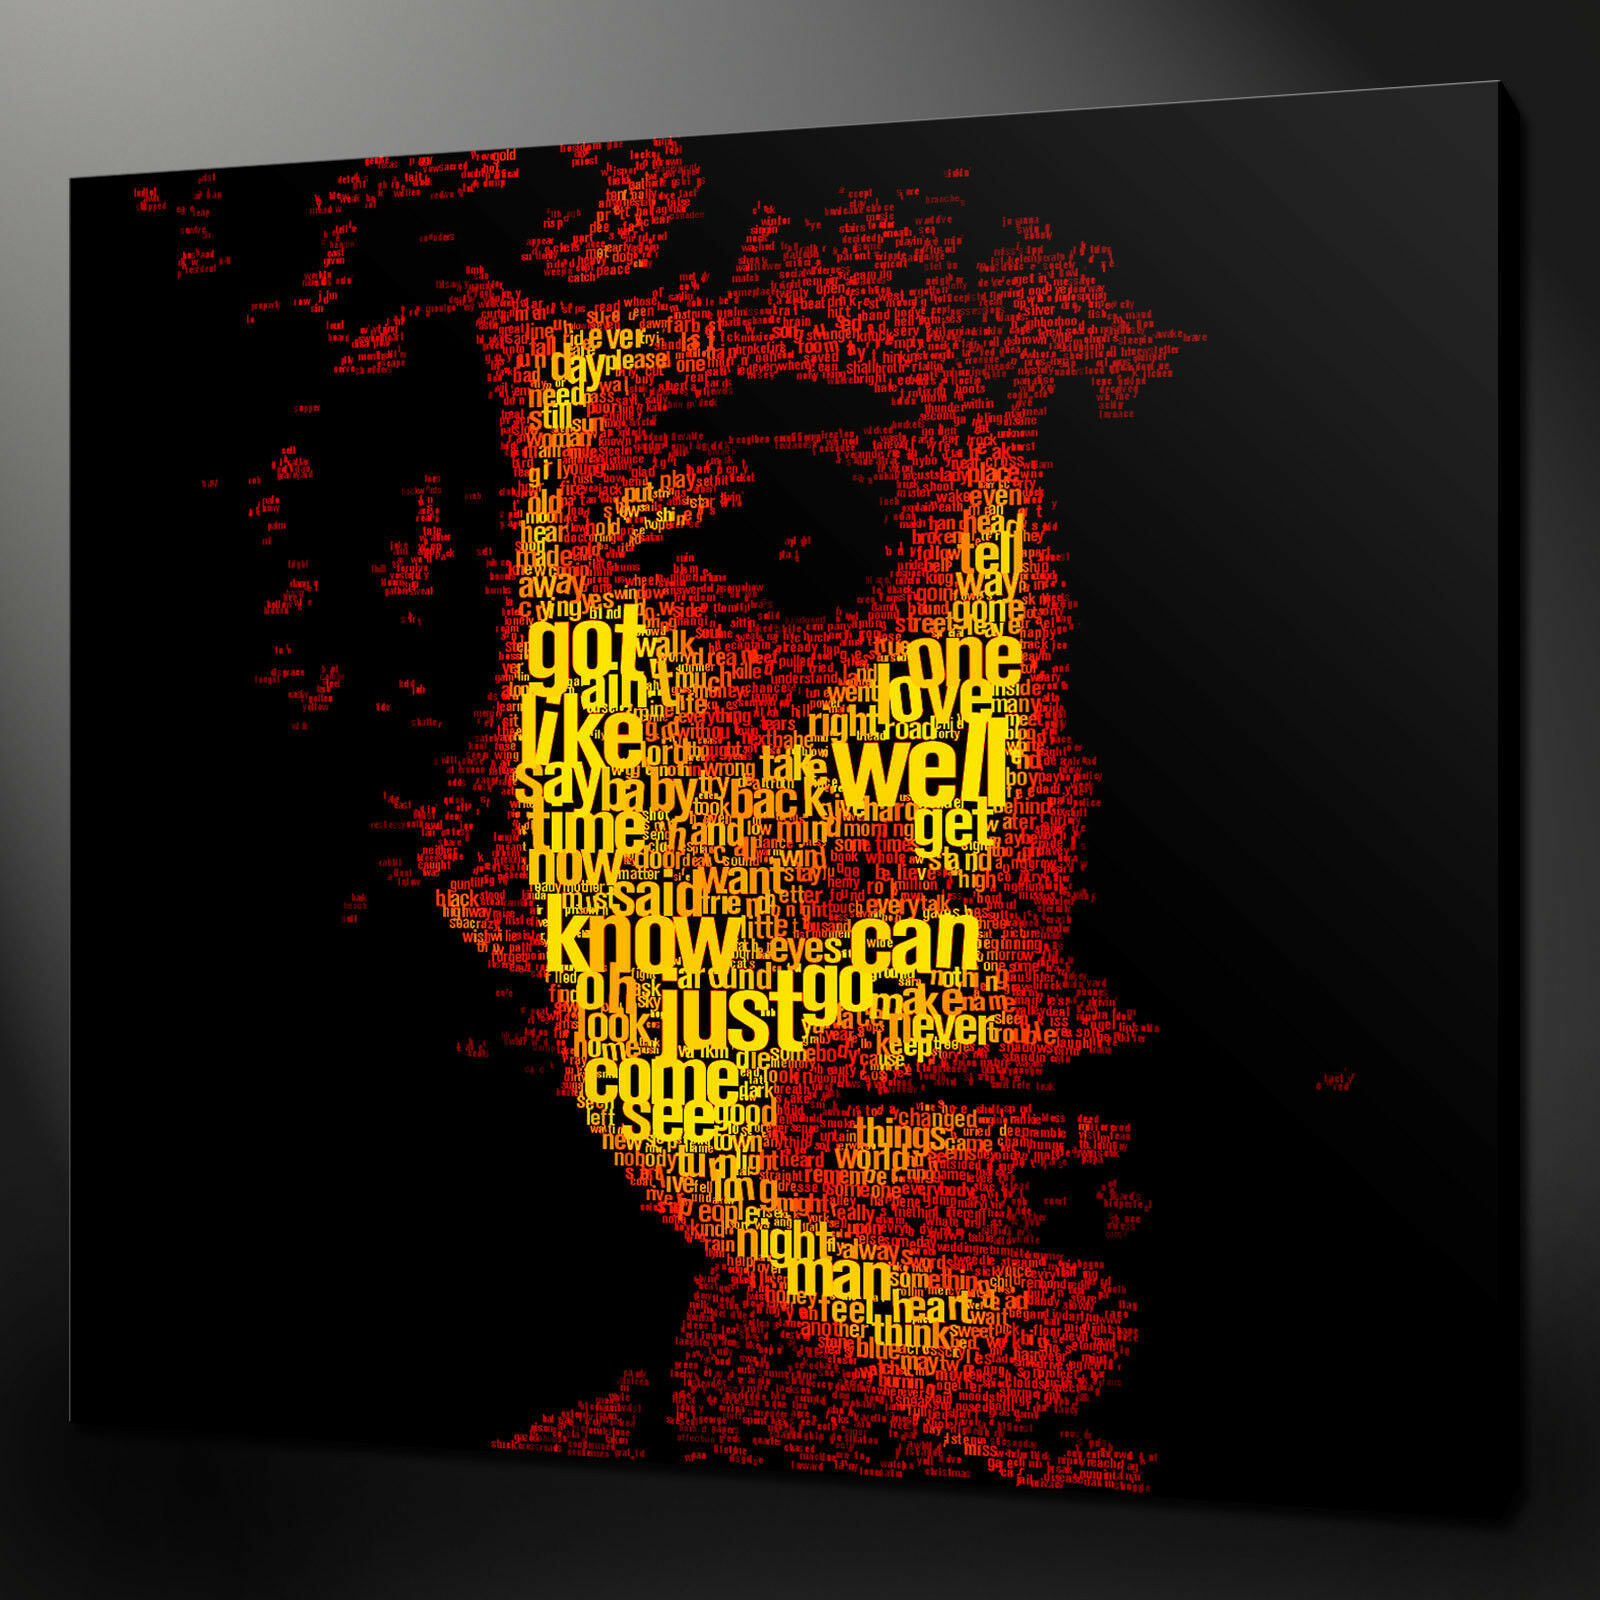 BOB DYLAN TYPOGRAPHY CANVAS PICTURE PRINT WALL ART HOME DECOR DECOR DECOR FREE FAST DELIVERY 7356bb